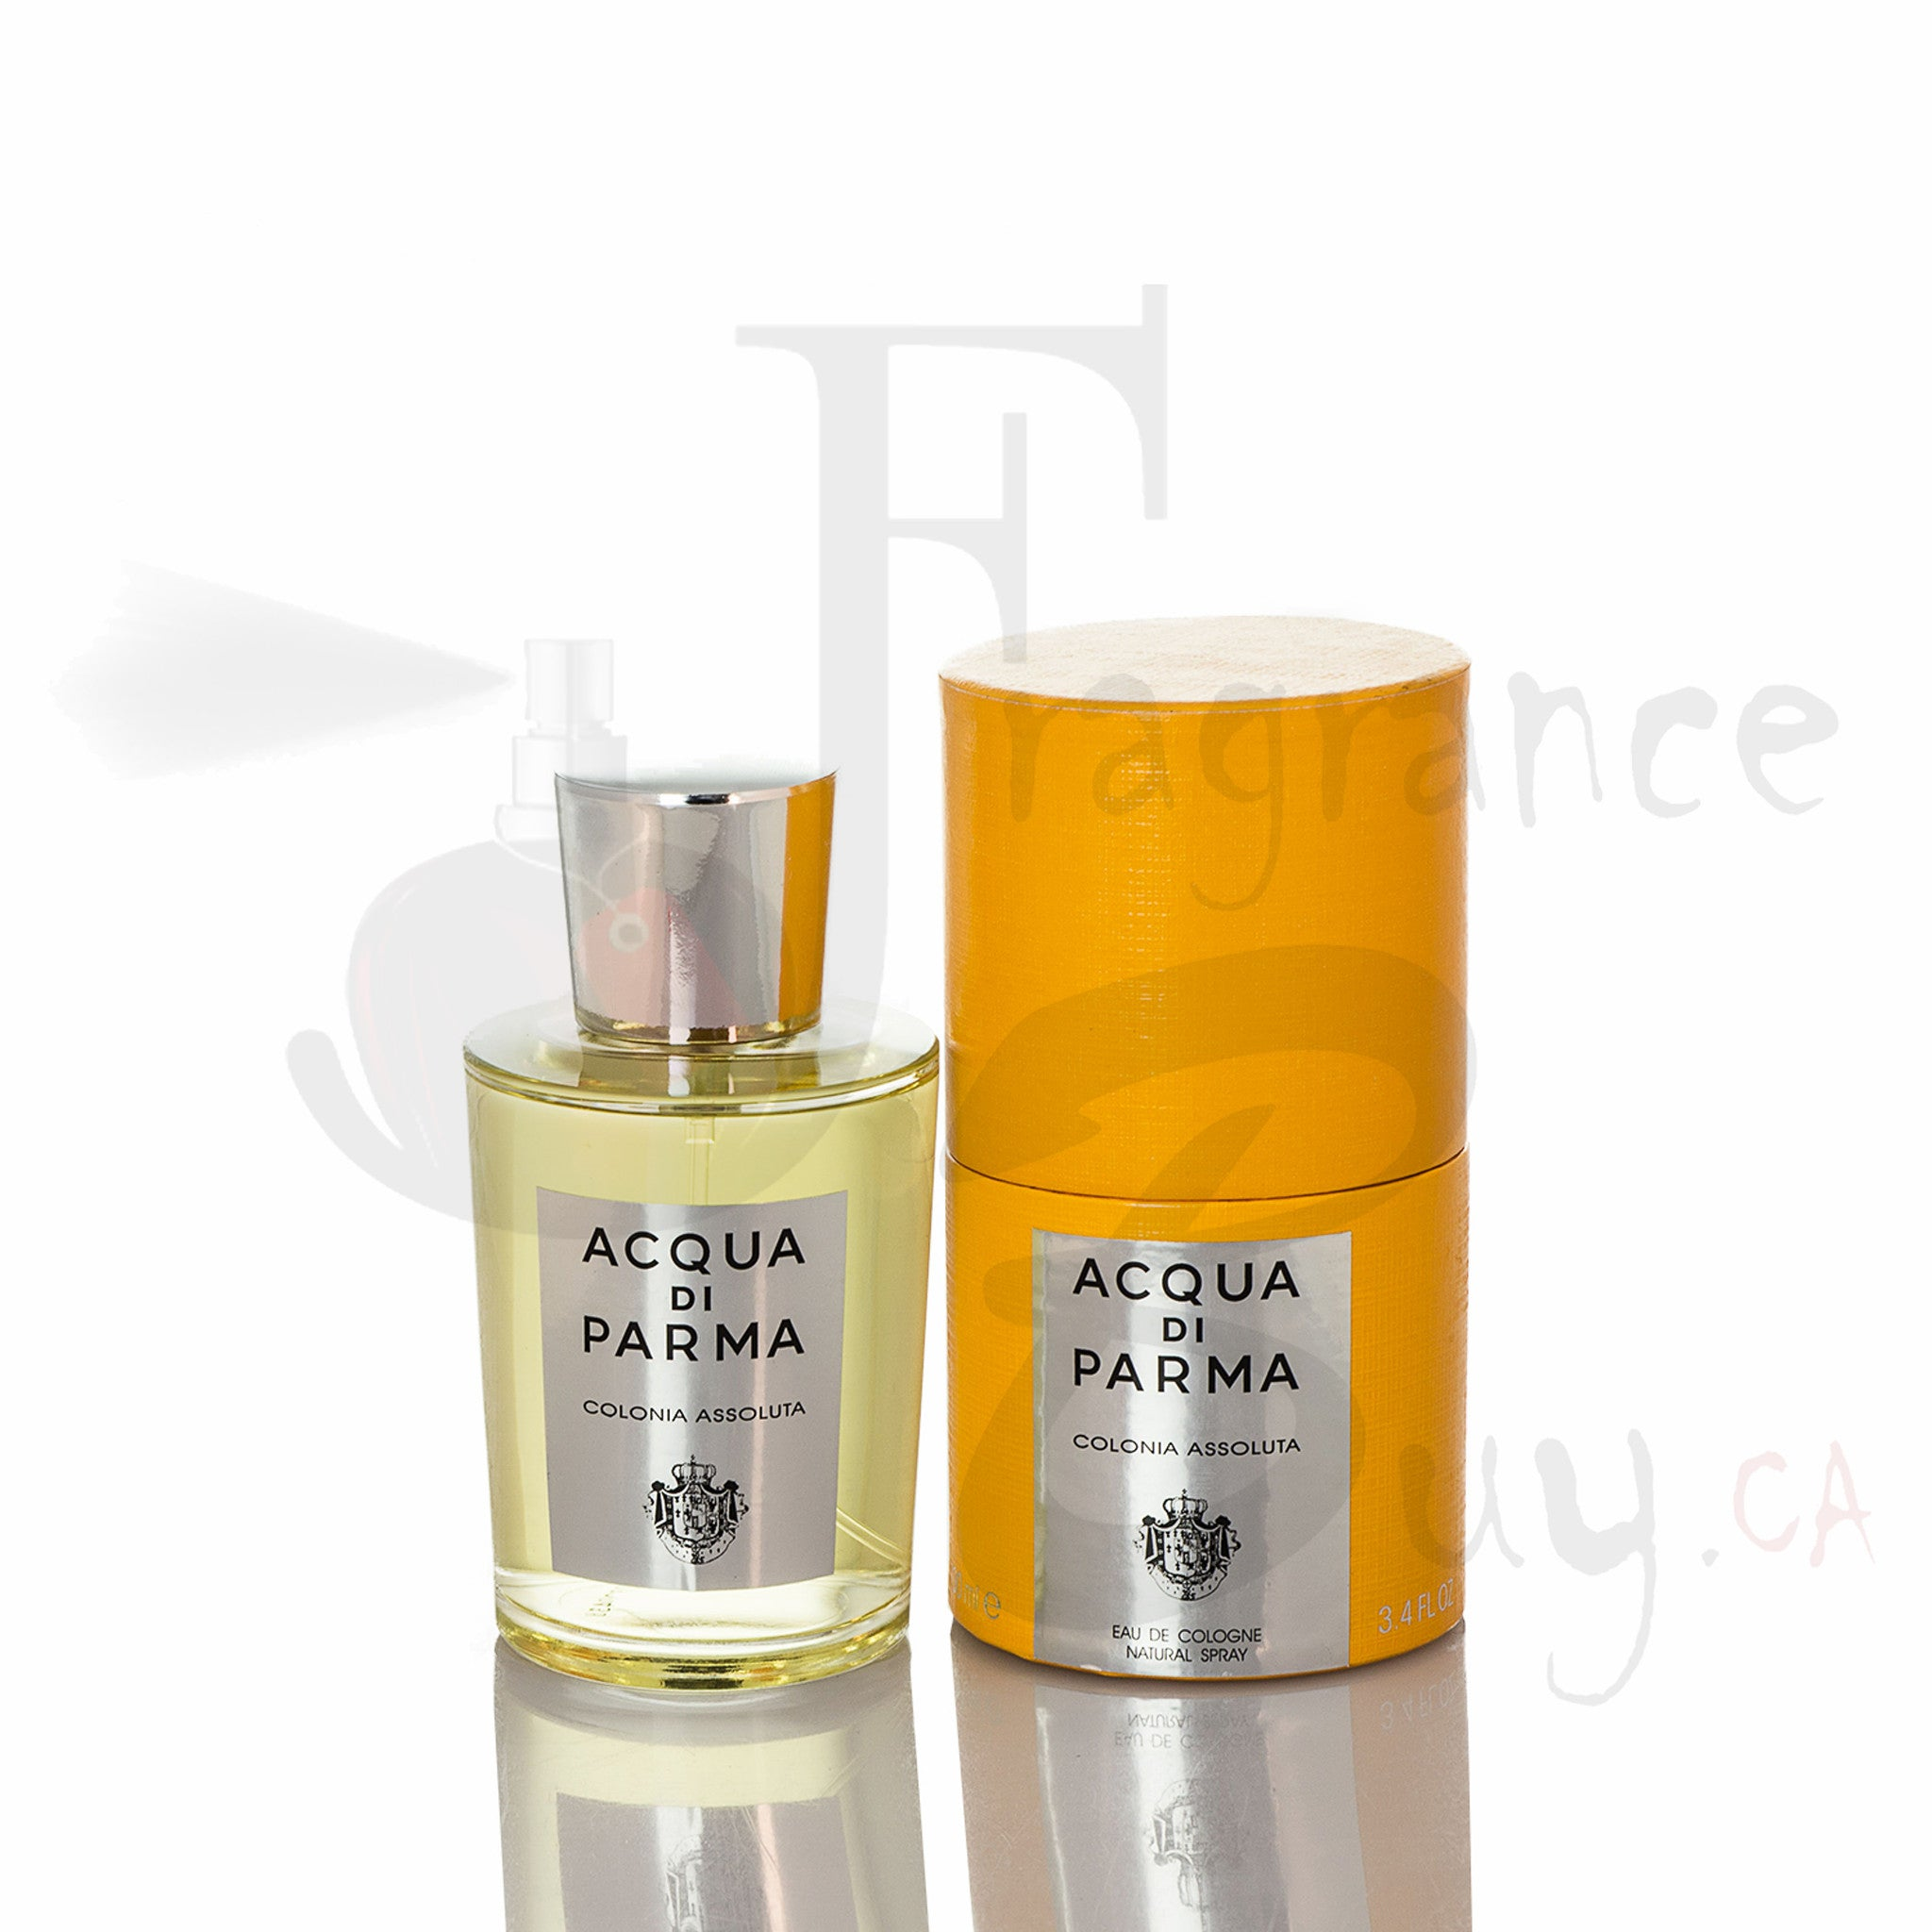 Acqua Di Parma Colonia Assoluta Cologne For Man/Woman